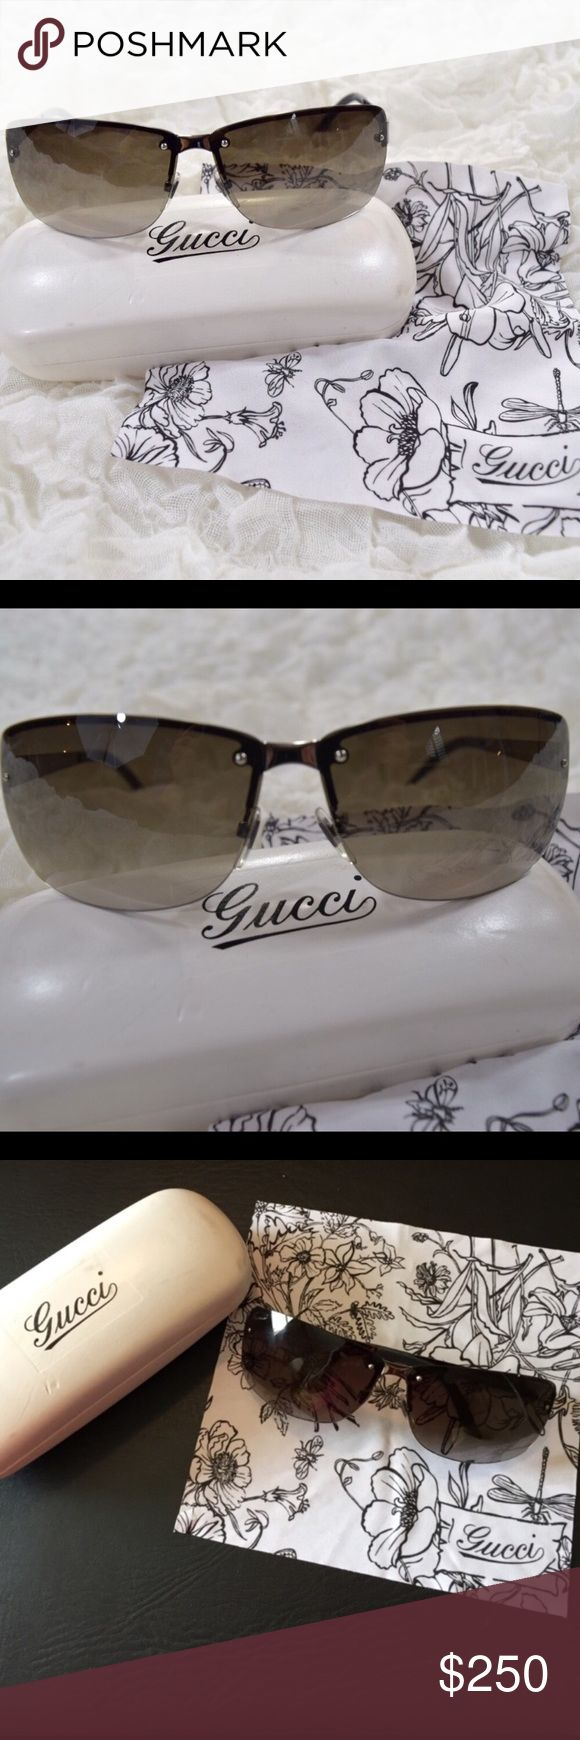 Authentic Gucci Sunglasses Beautiful Gucci sunglasses🎀 Authentic🎀 Great condition-only worn a handful of times🎀Case and Gucci cleaning cloth are included🎀 Smoke free and pet free home Gucci Accessories Sunglasses